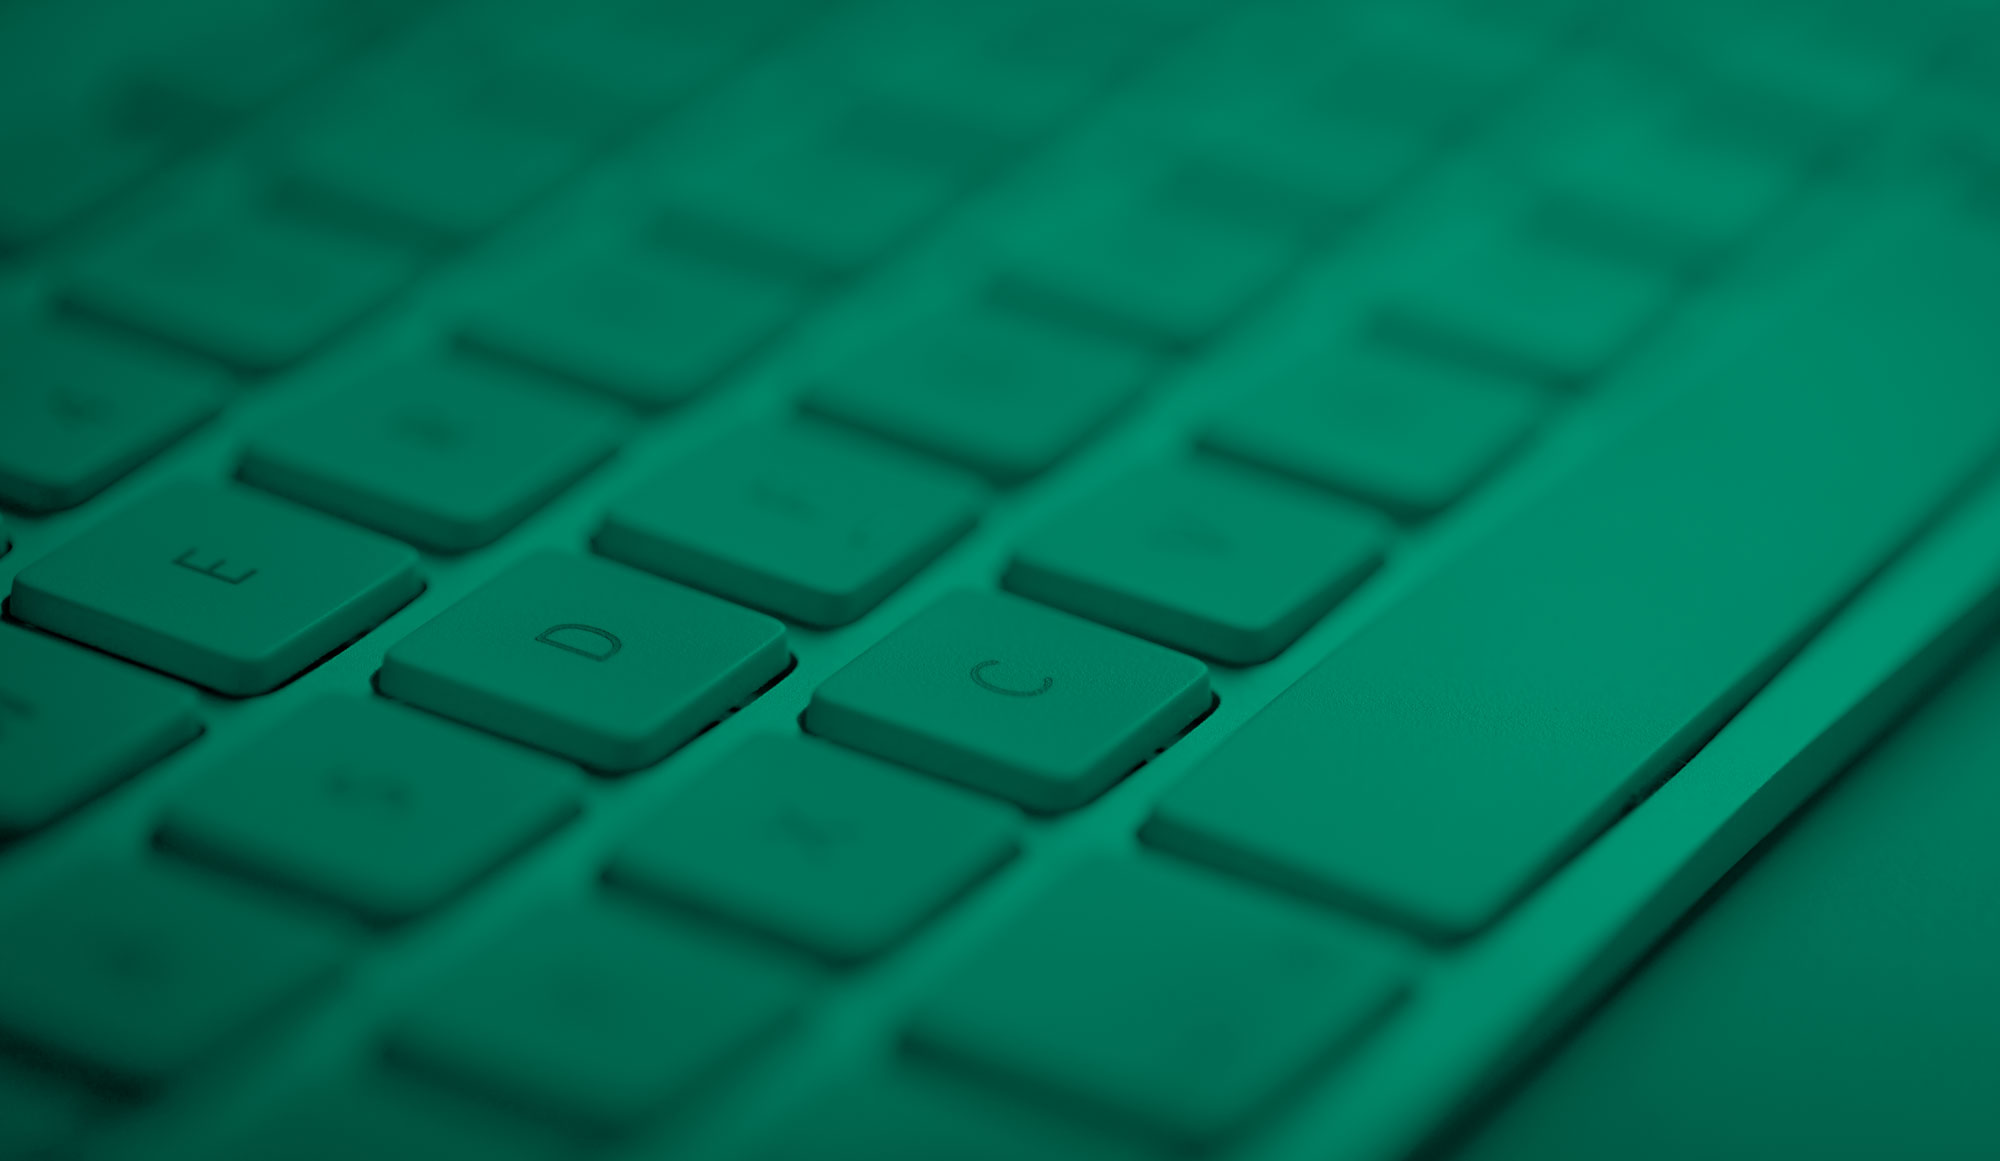 An image of a computer keyboard close-up with green effect